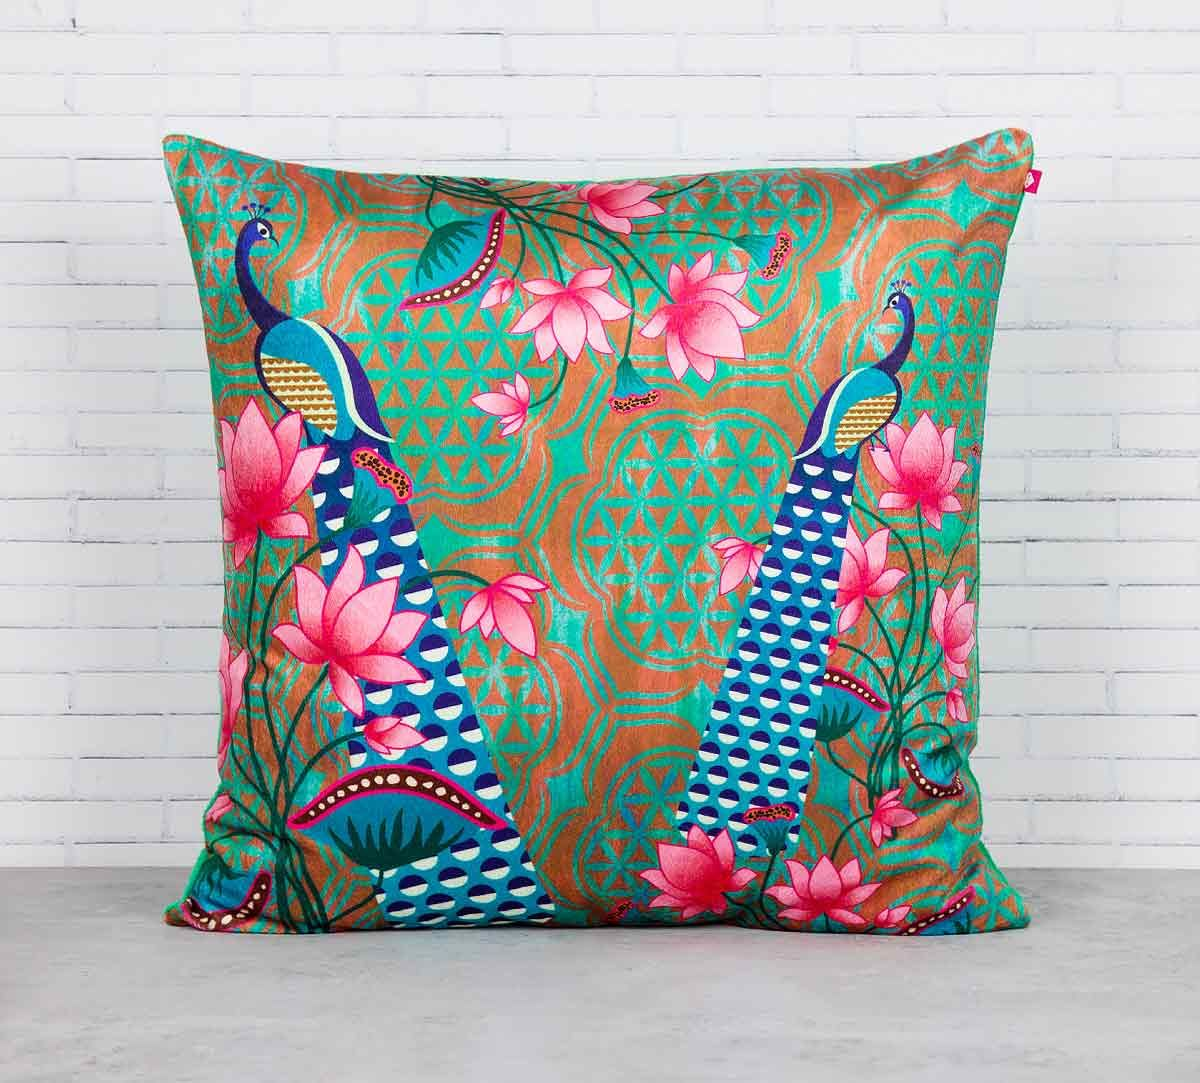 India Circus Realm of Pride Blended Velvet Cushion Cover